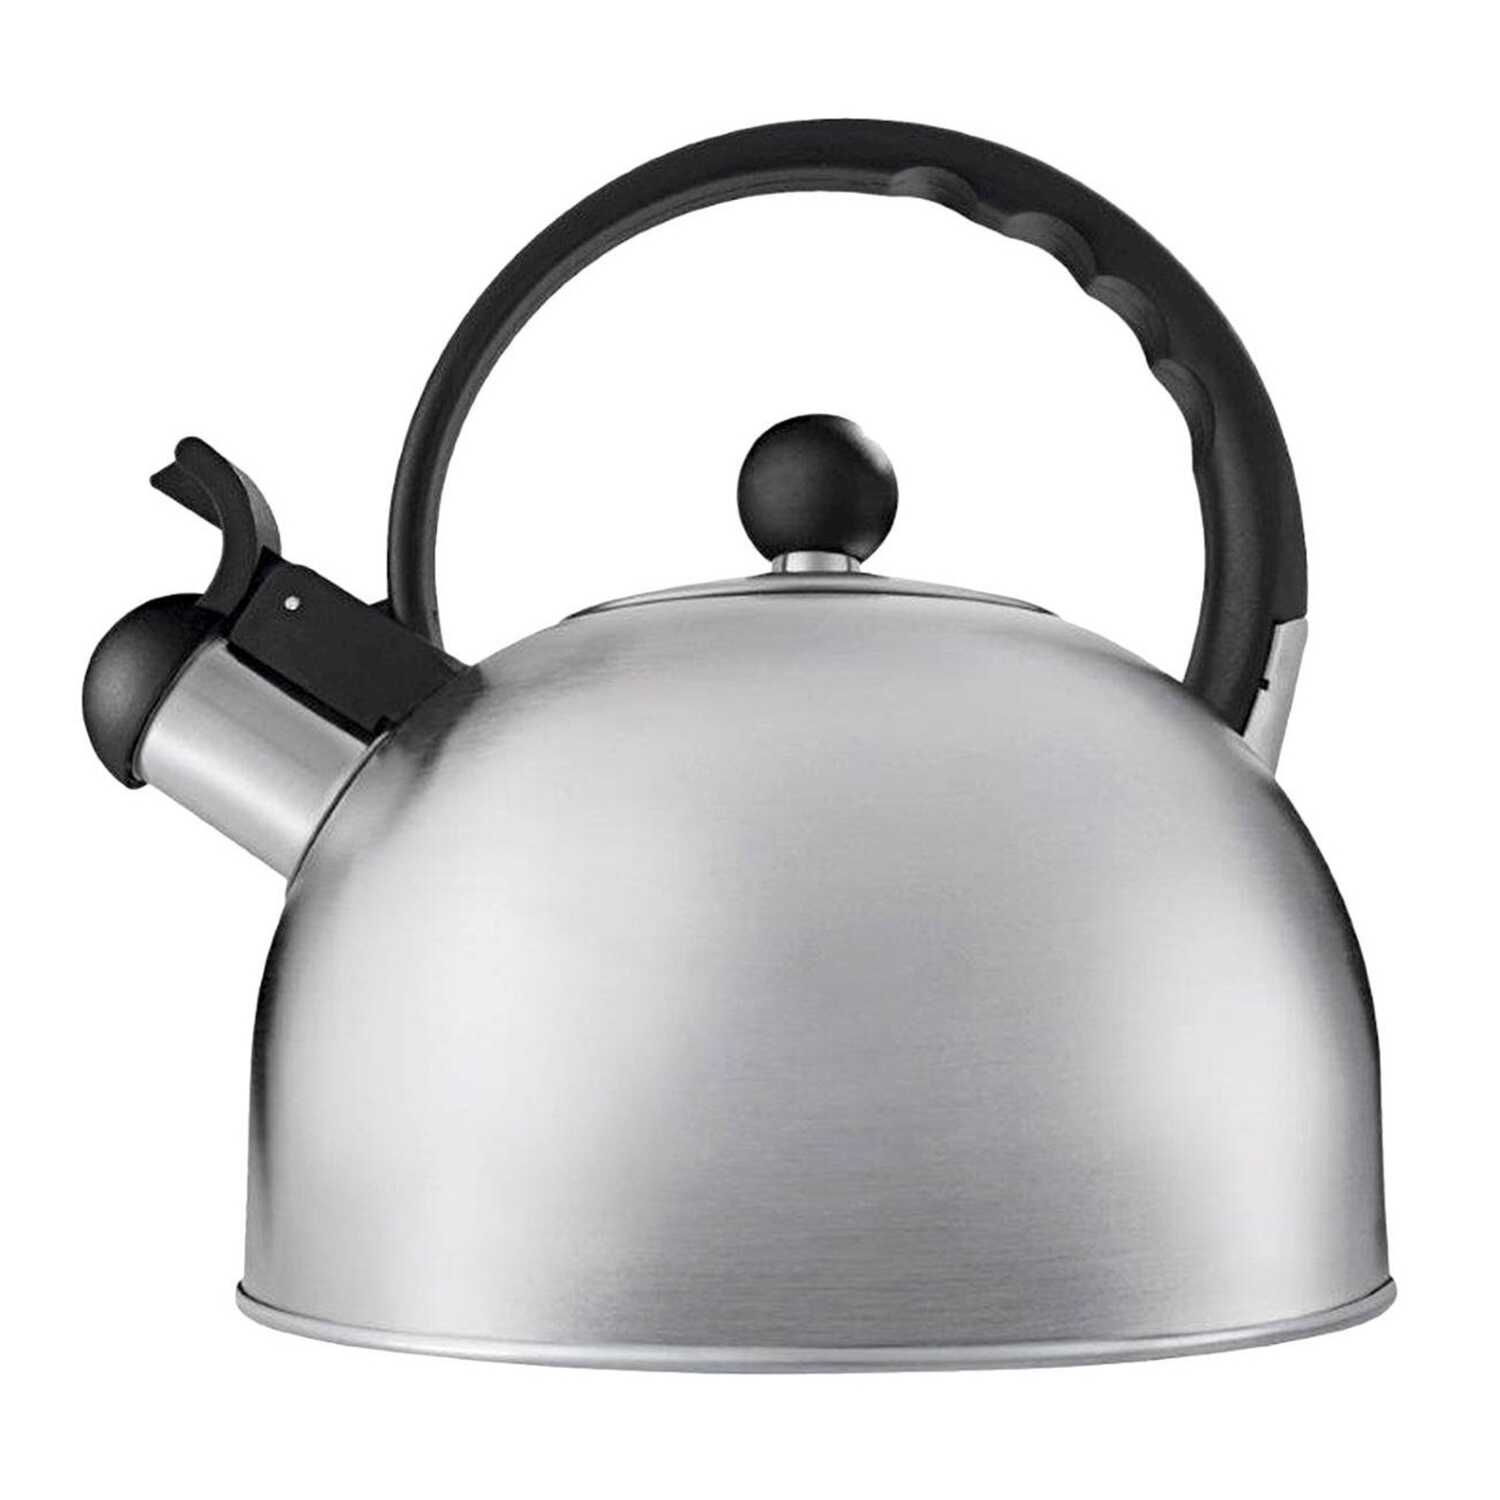 Copco  Tucker  Silver  Classic Whistle  Stainless Steel  1-1/2 qt. Tea Kettle